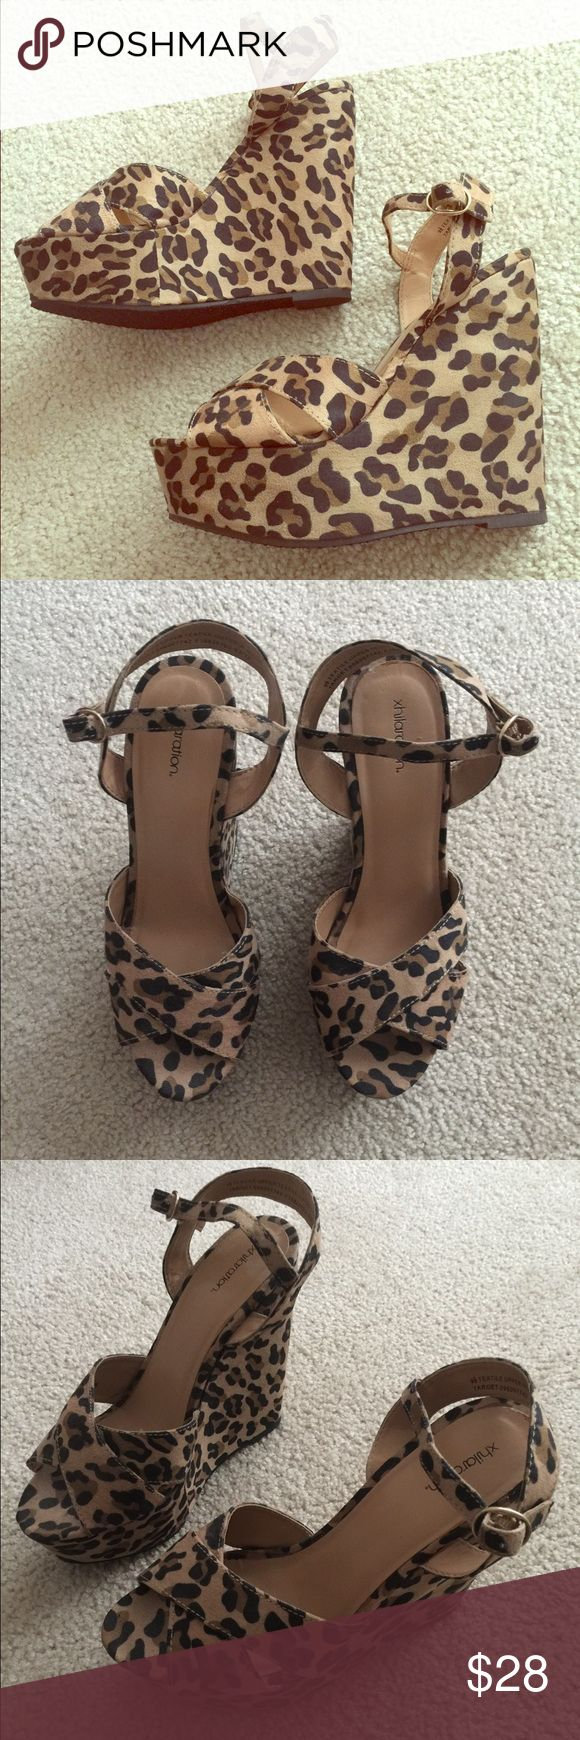 Leopard Wedges Leopard Wedges from target. Worn twice. Size 9.5. They are too cute and need a new home :) Mossimo Supply Co Shoes Wedges